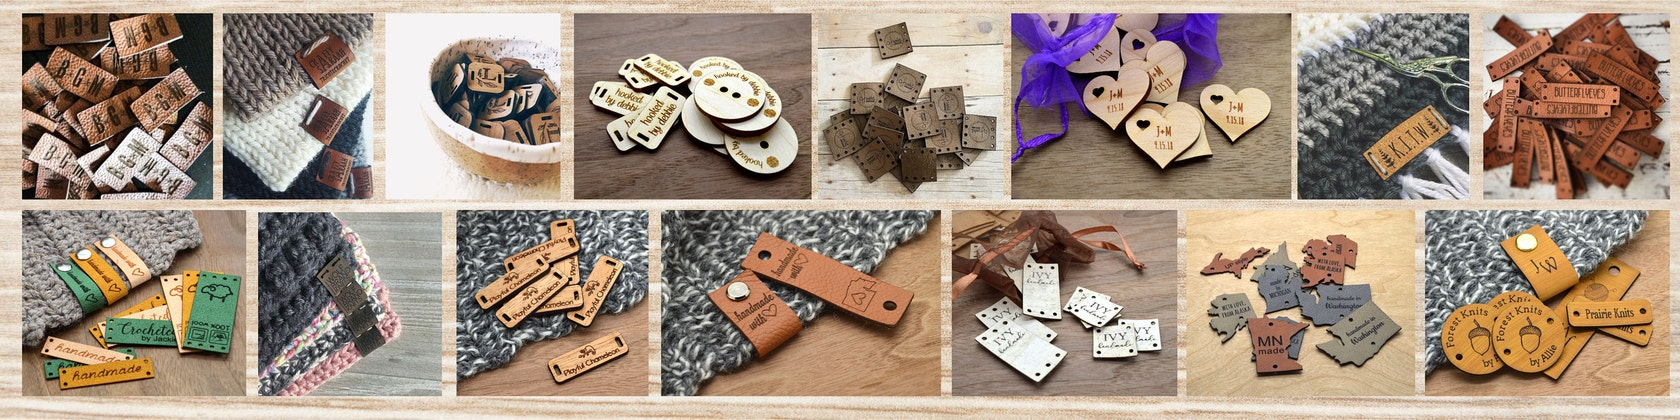 knitting Wooden Buttons Wooden craft sew on labels product Tags X 40 Crochet